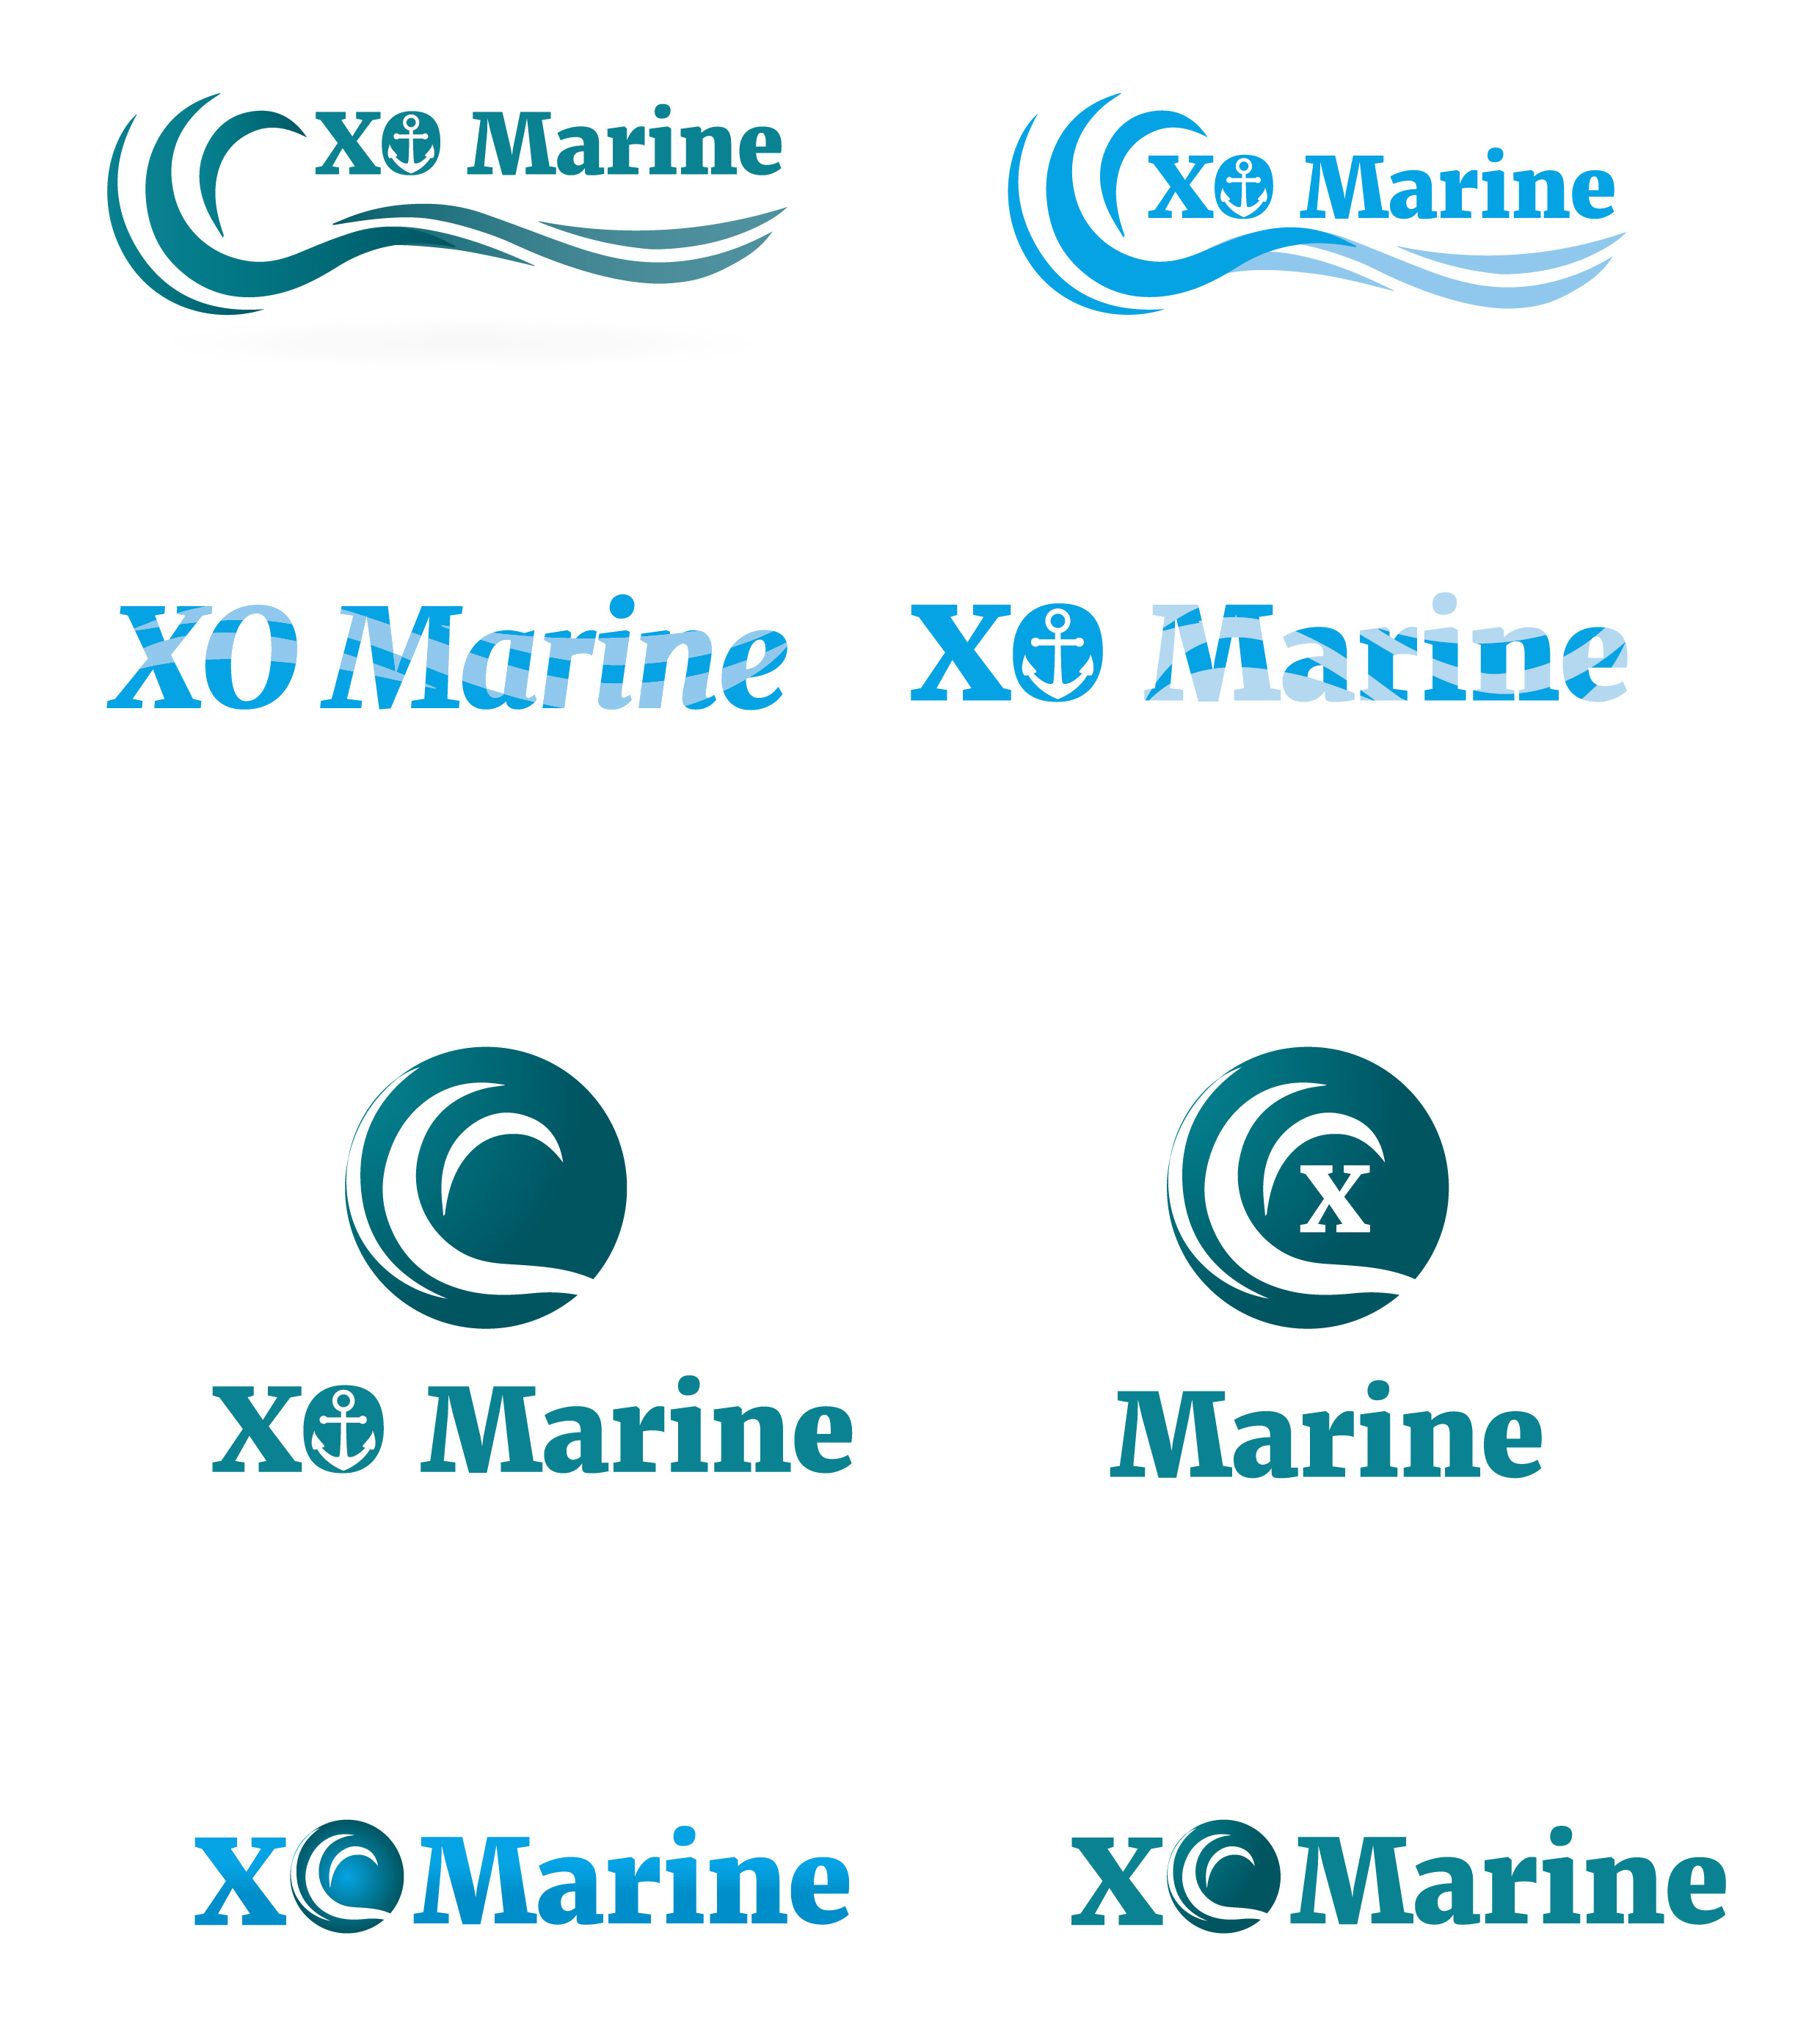 XO Marine logo web design in riga